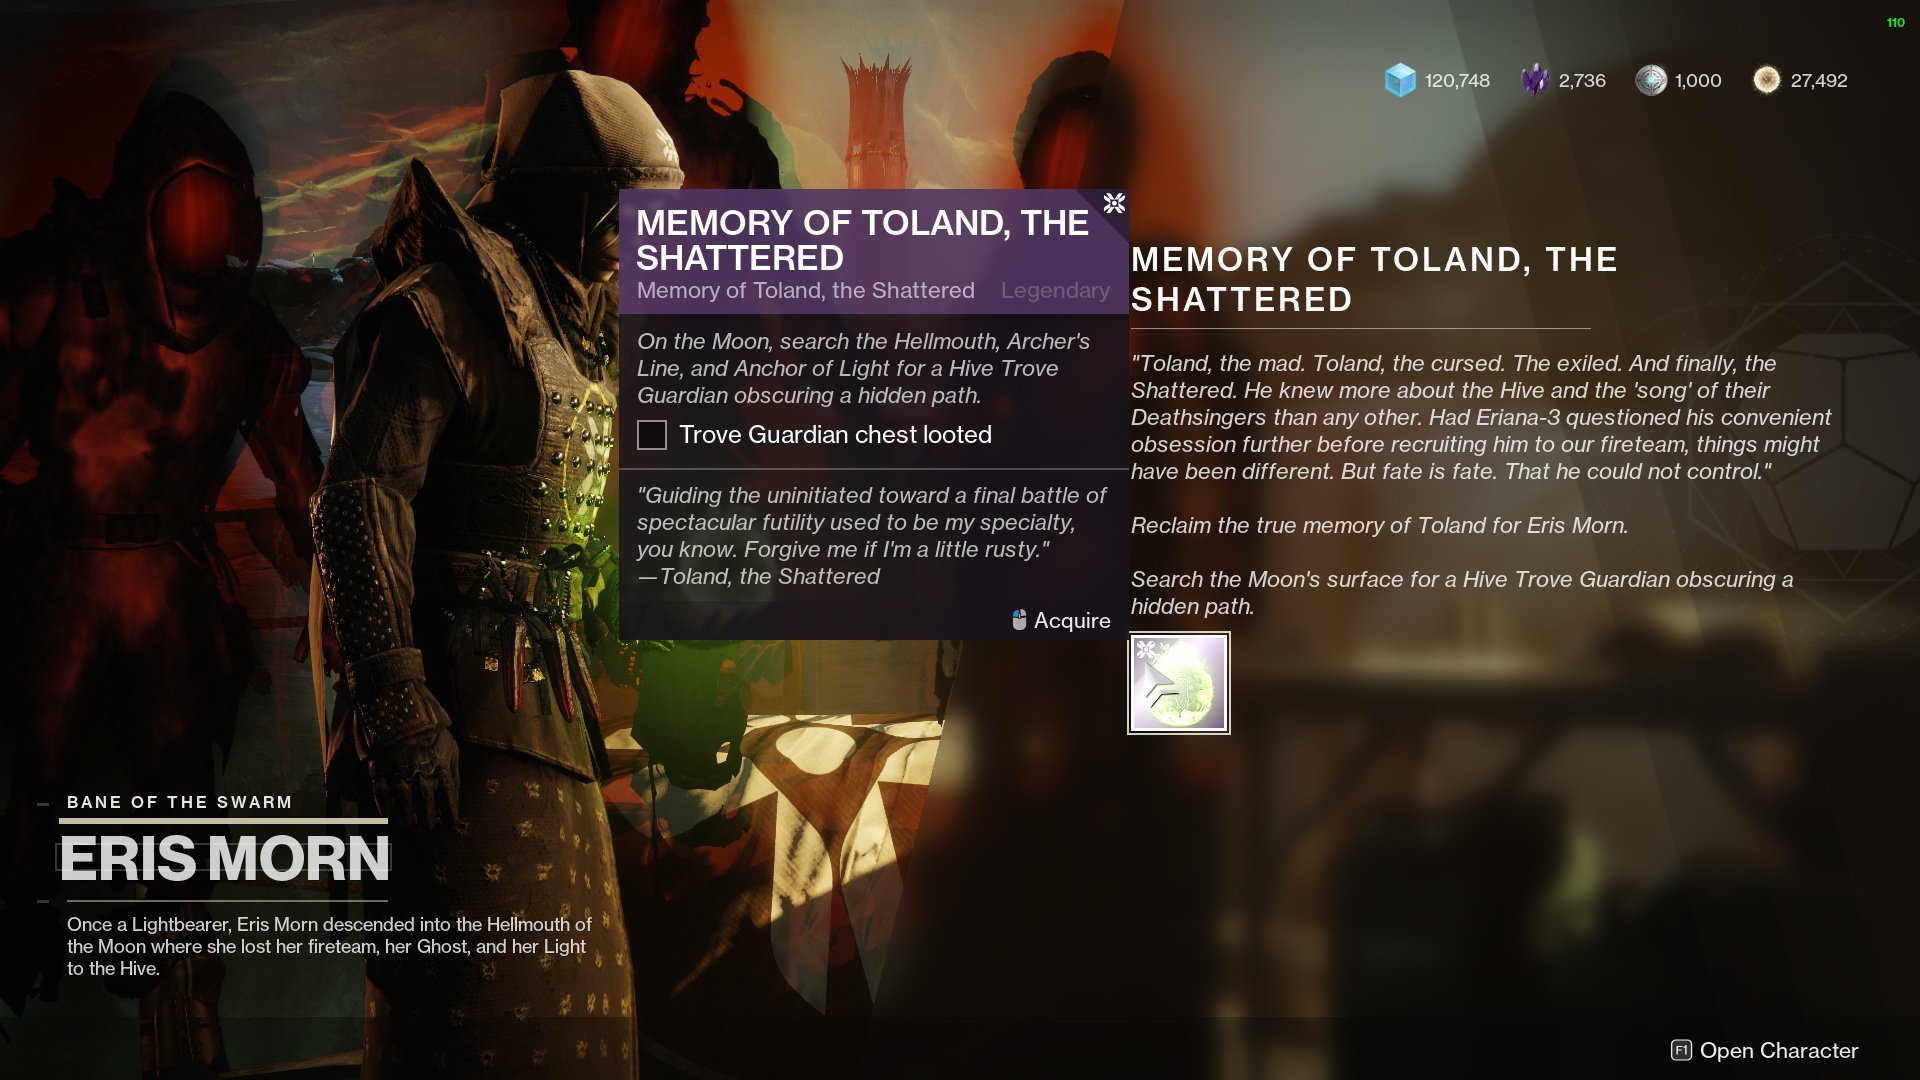 Destiny 2 Memory of Toland the Shattered